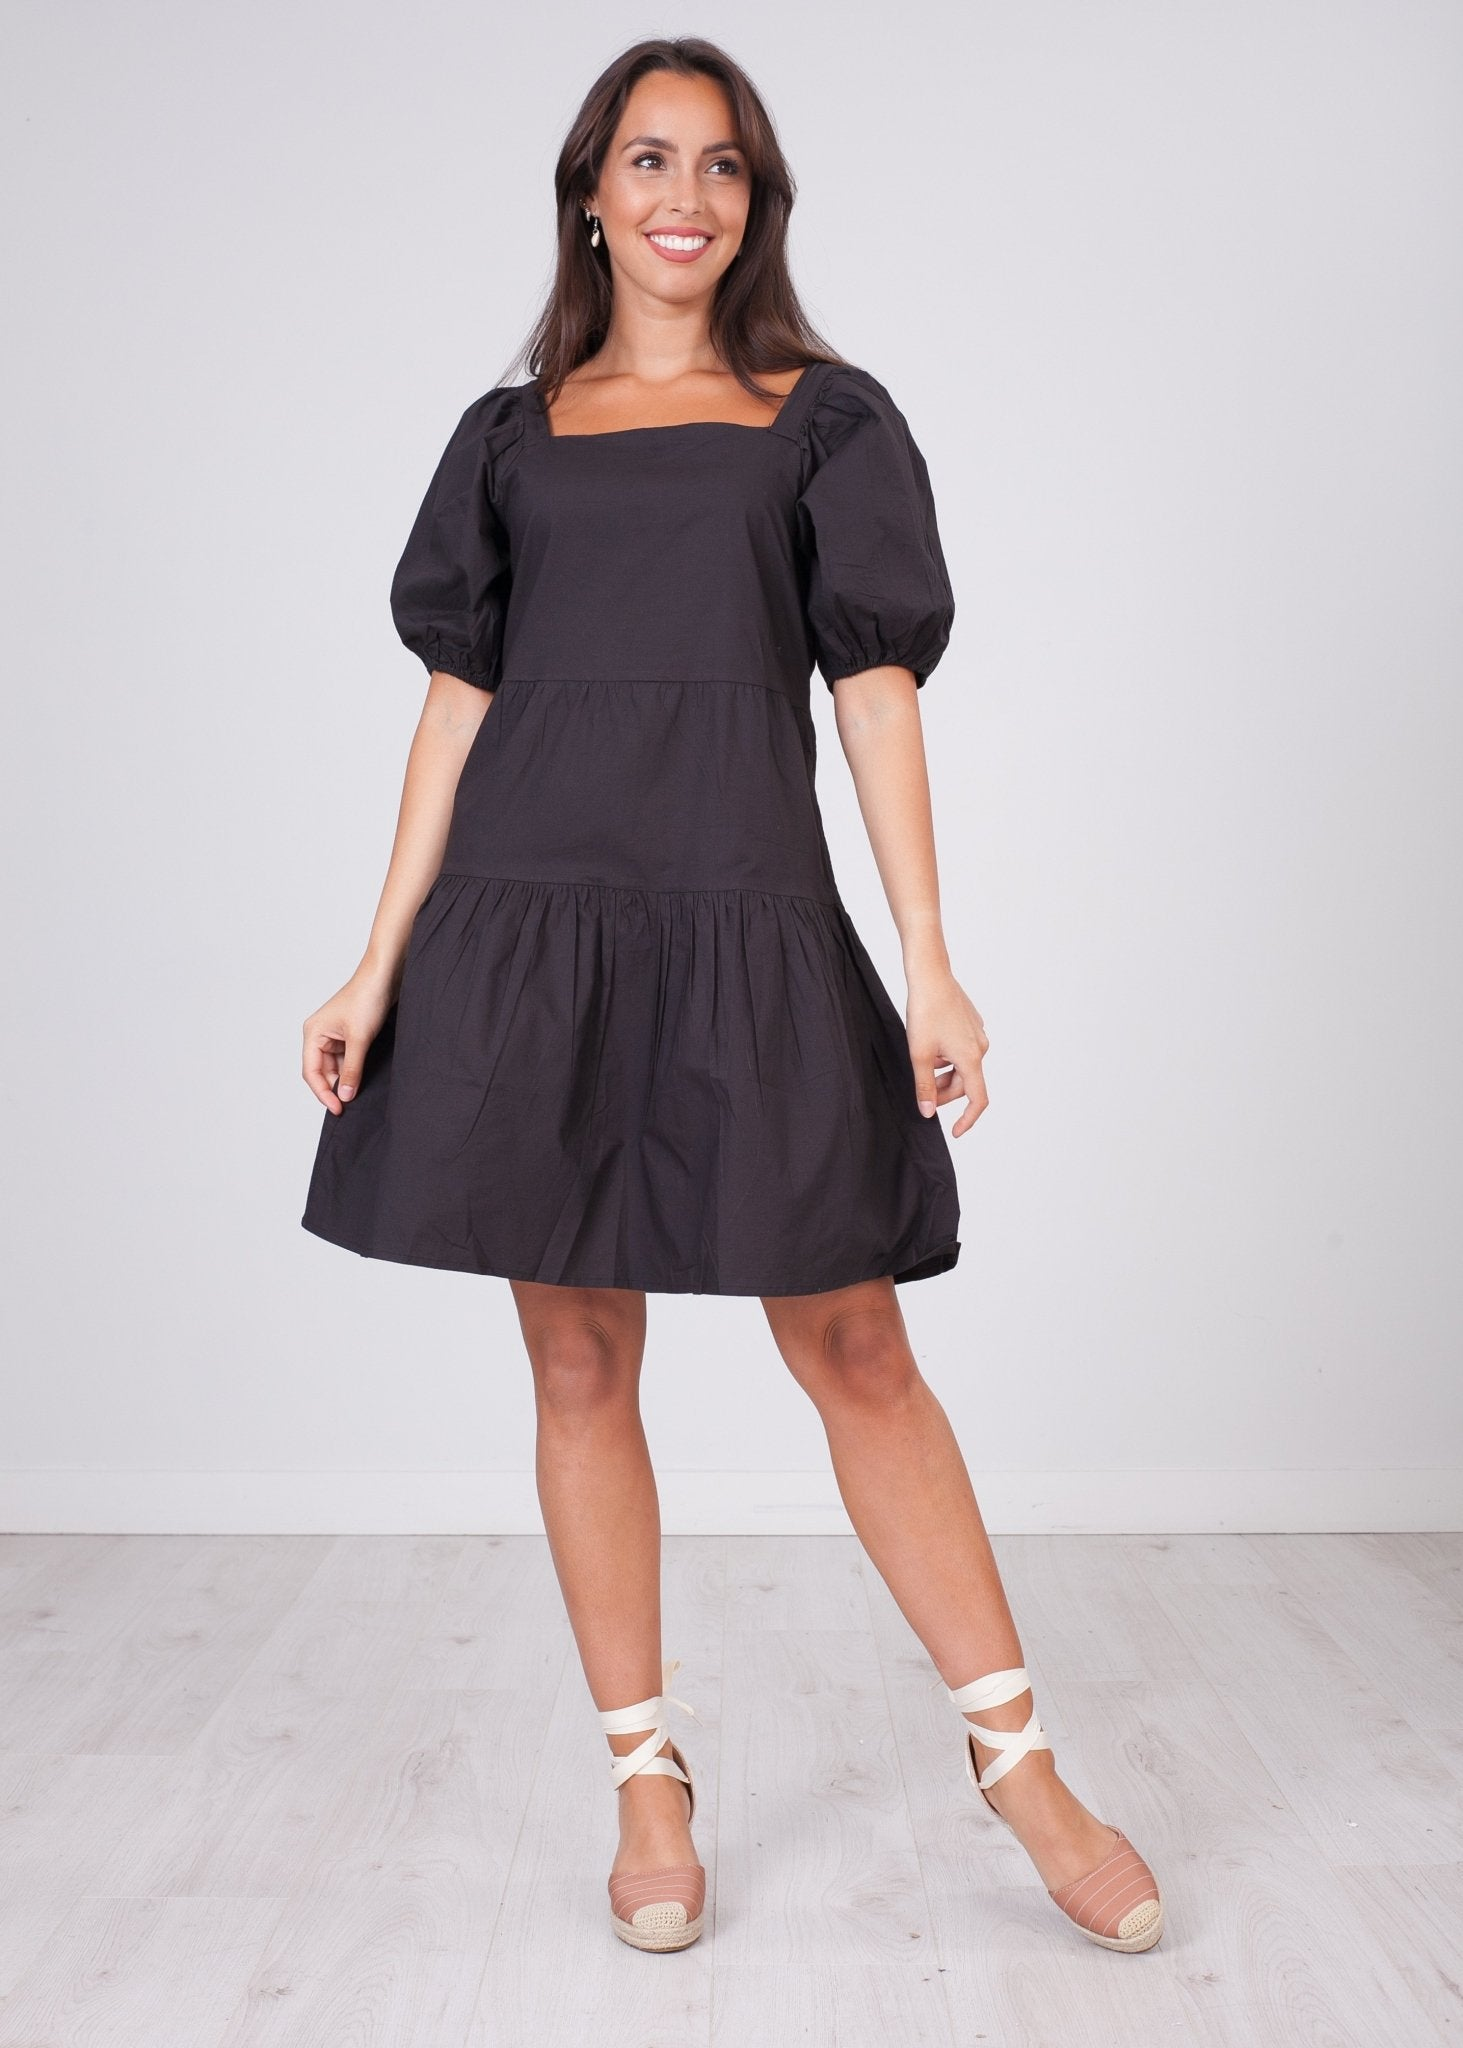 Nora Black Tiered Dress - The Walk in Wardrobe